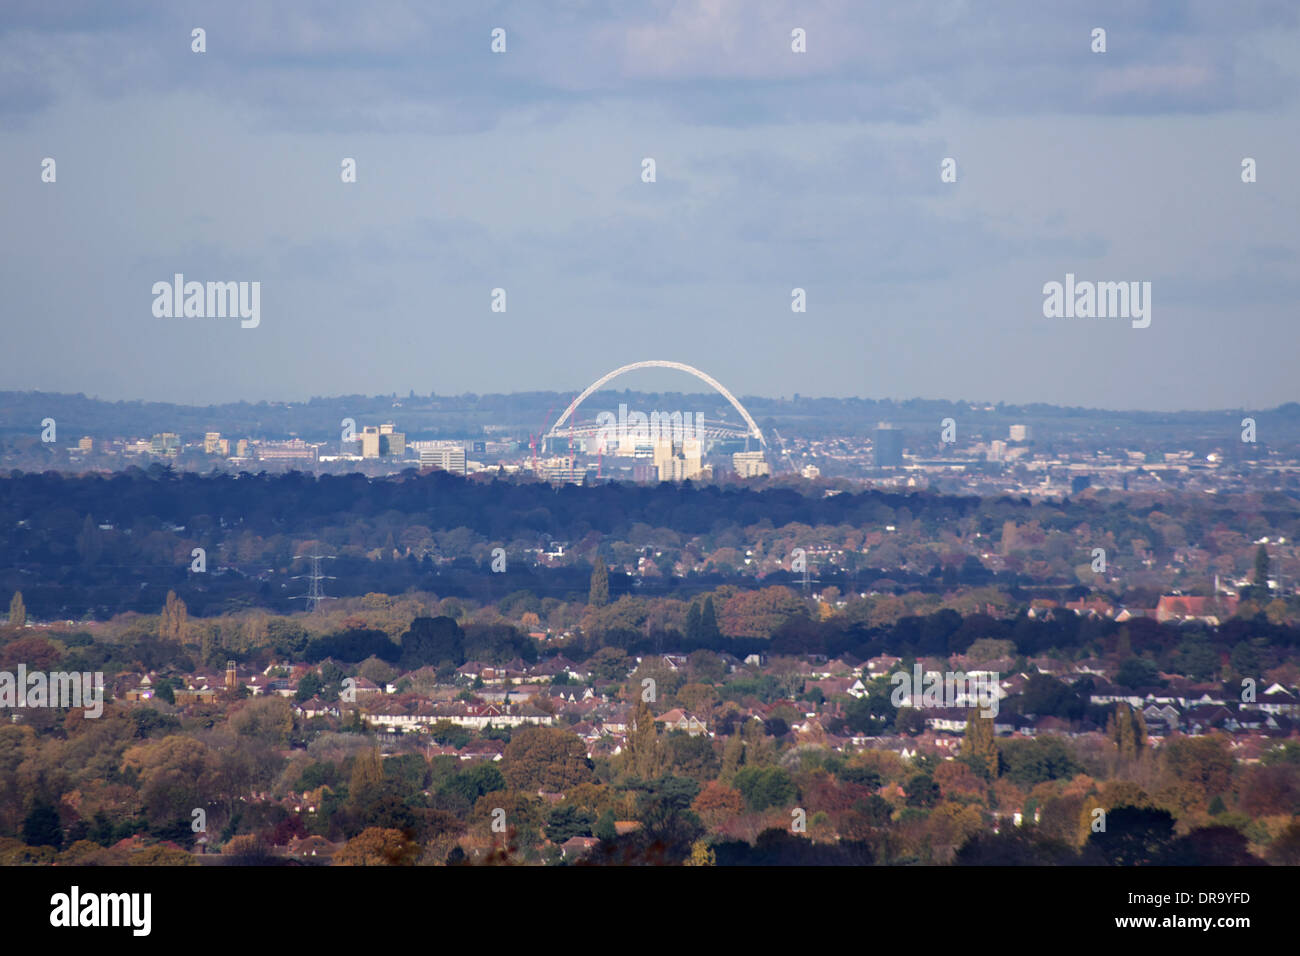 Wembley Stadium in London, with its distinctive arch, home of football in England, seen from Epsom Downs, 15 miles, 24km,  away. - Stock Image